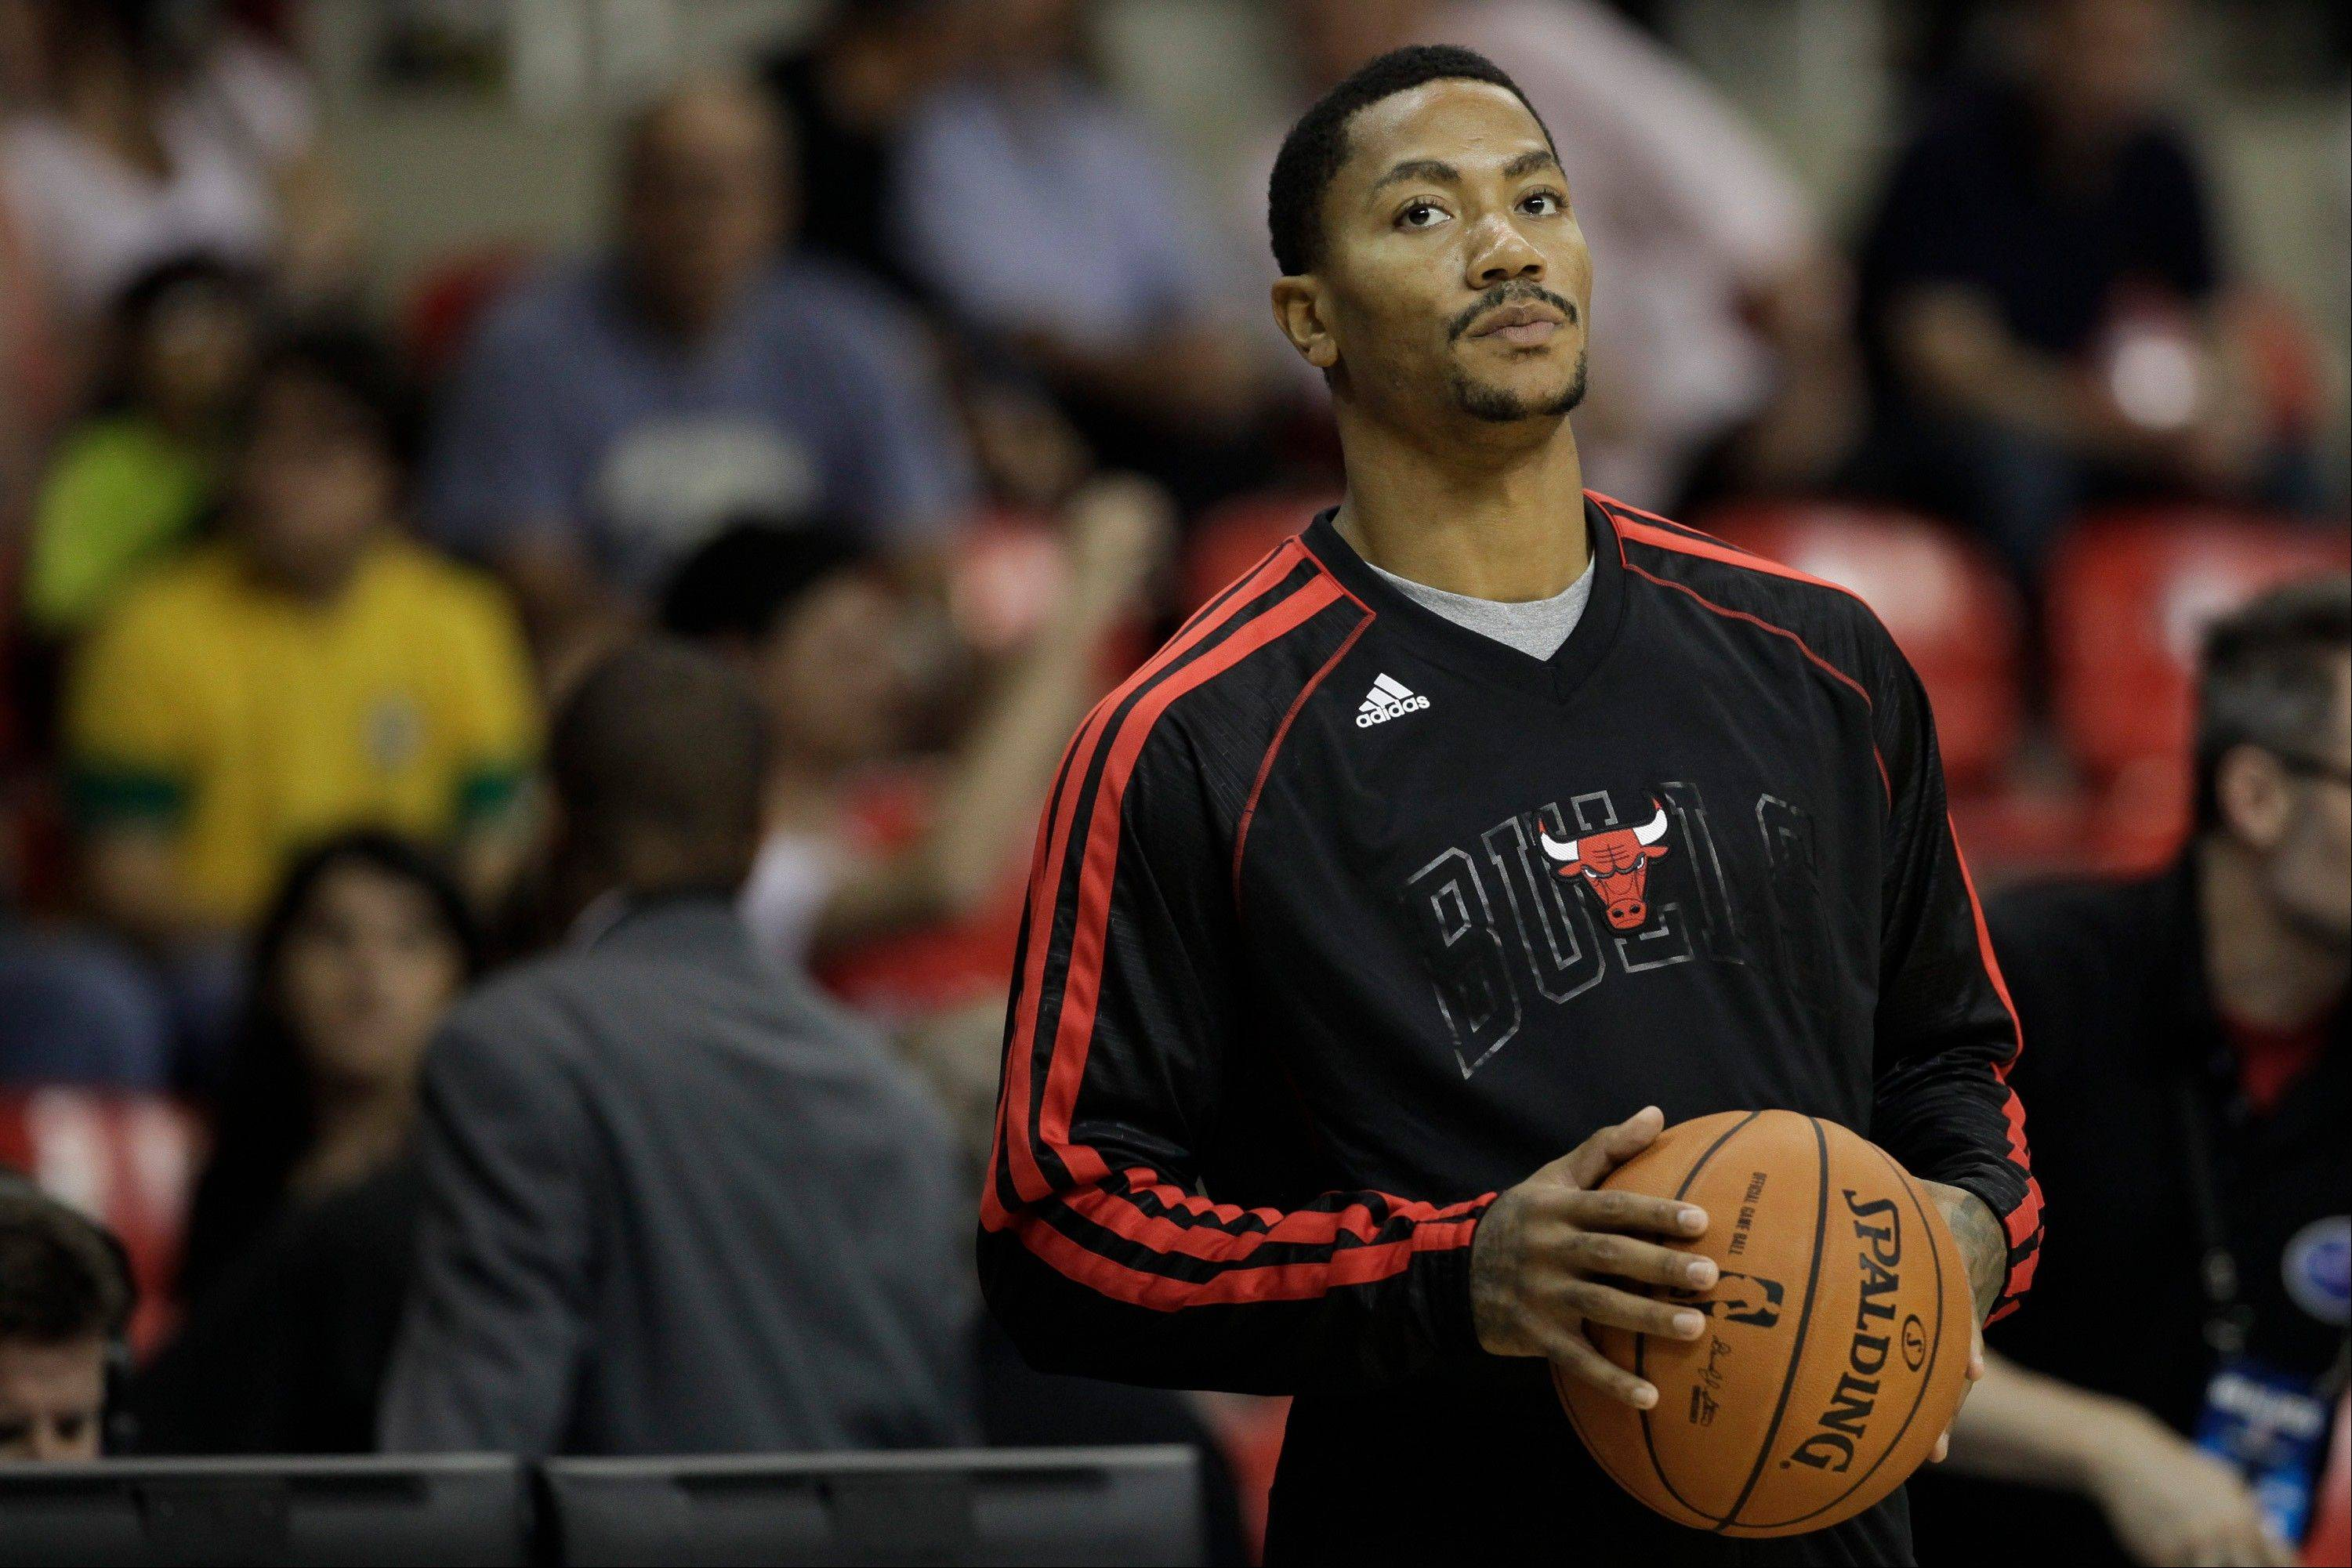 Derrick Rose watches as his Bulls teammates warm up before their preseason game against the Washington Wizards in Brazil on Saturday. Rose missed sat out the game with soreness in his surgically repaired left knee.